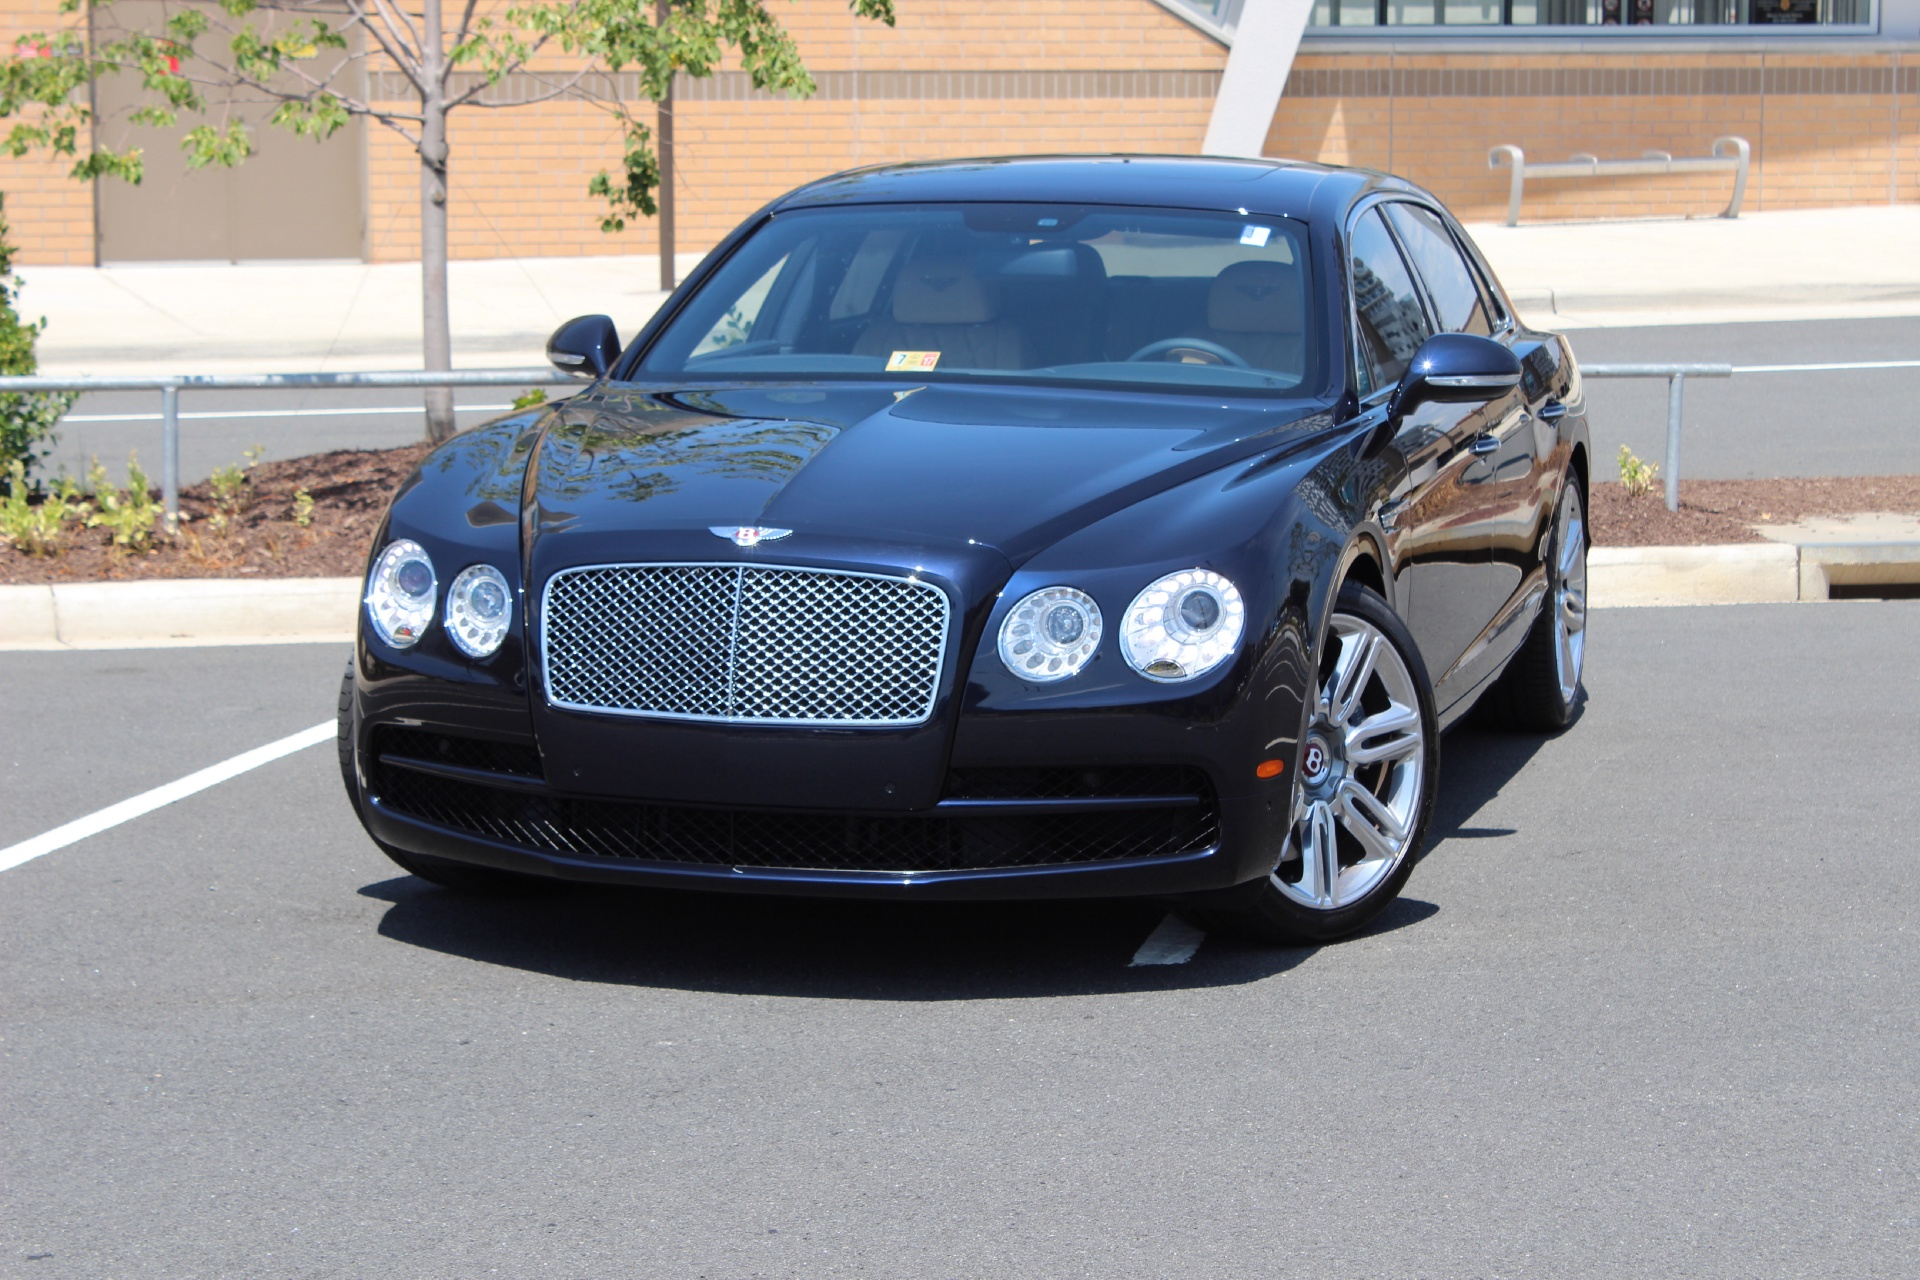 2016 Bentley Flying Spur Stock 6nc055910 For Sale Near Vienna Va Va Bentley Dealer For Sale In Vienna Va 6nc055910 Exclusive Automotive Group